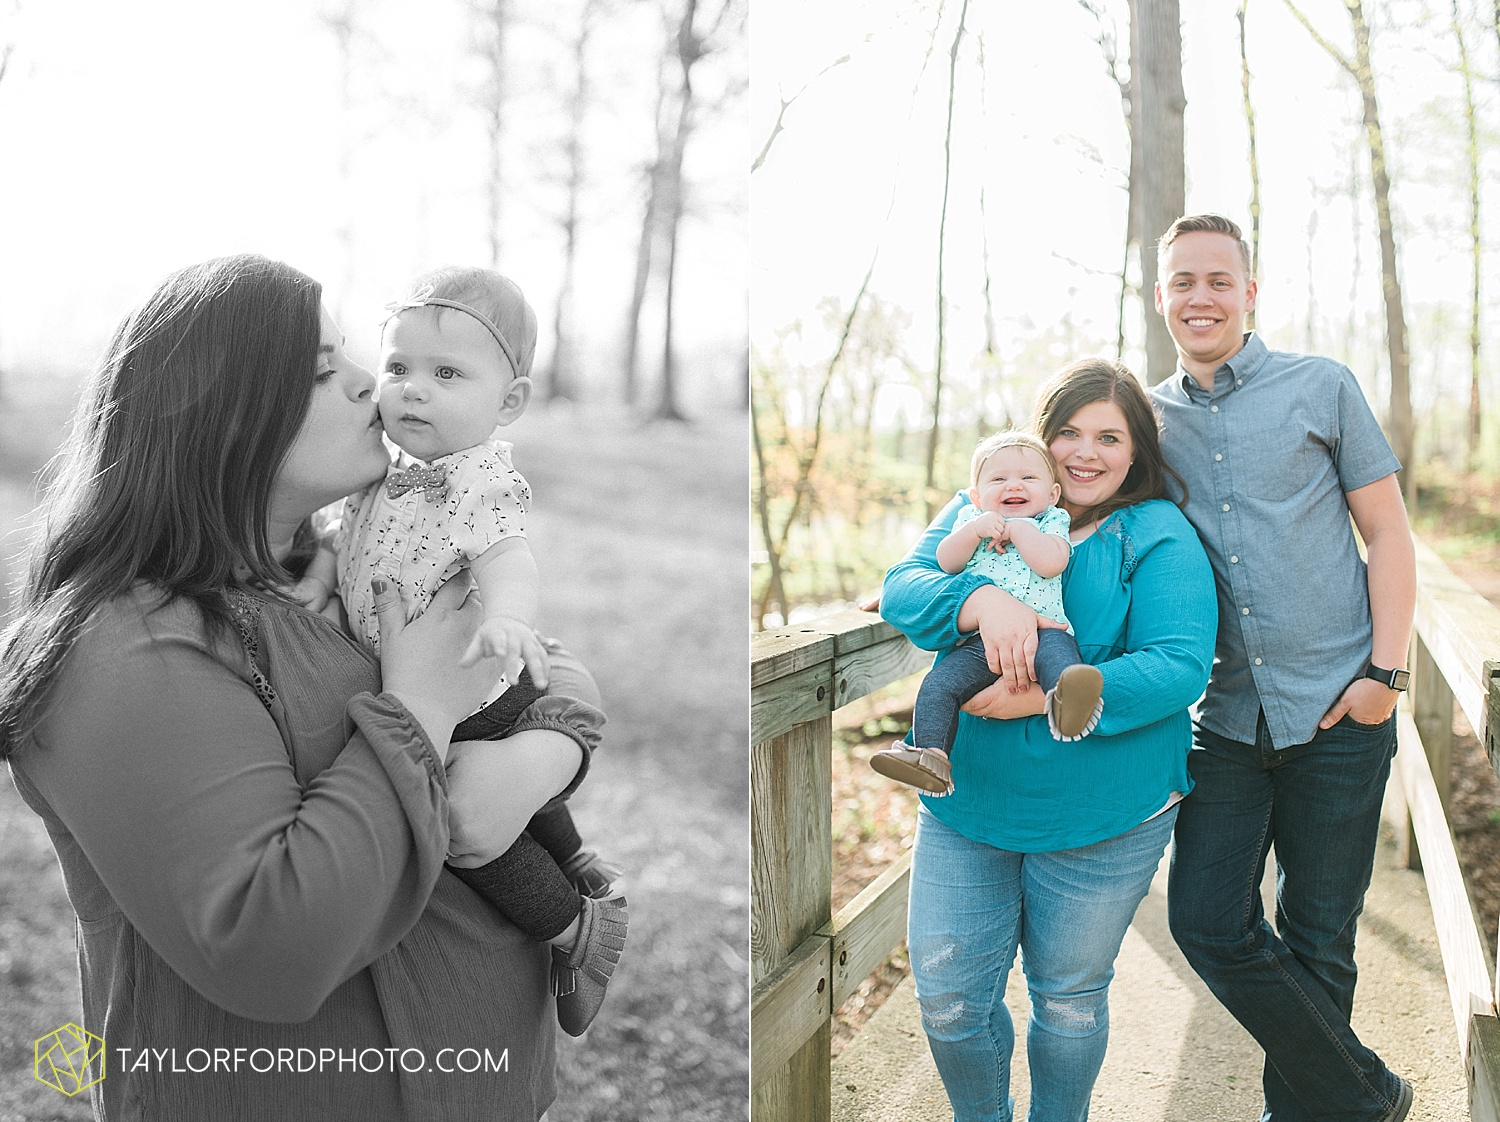 fort-wayne-indiana-family-photographer-taylor-ford-photography-van-wert-lima-ohio-soaff-park_1570.jpg